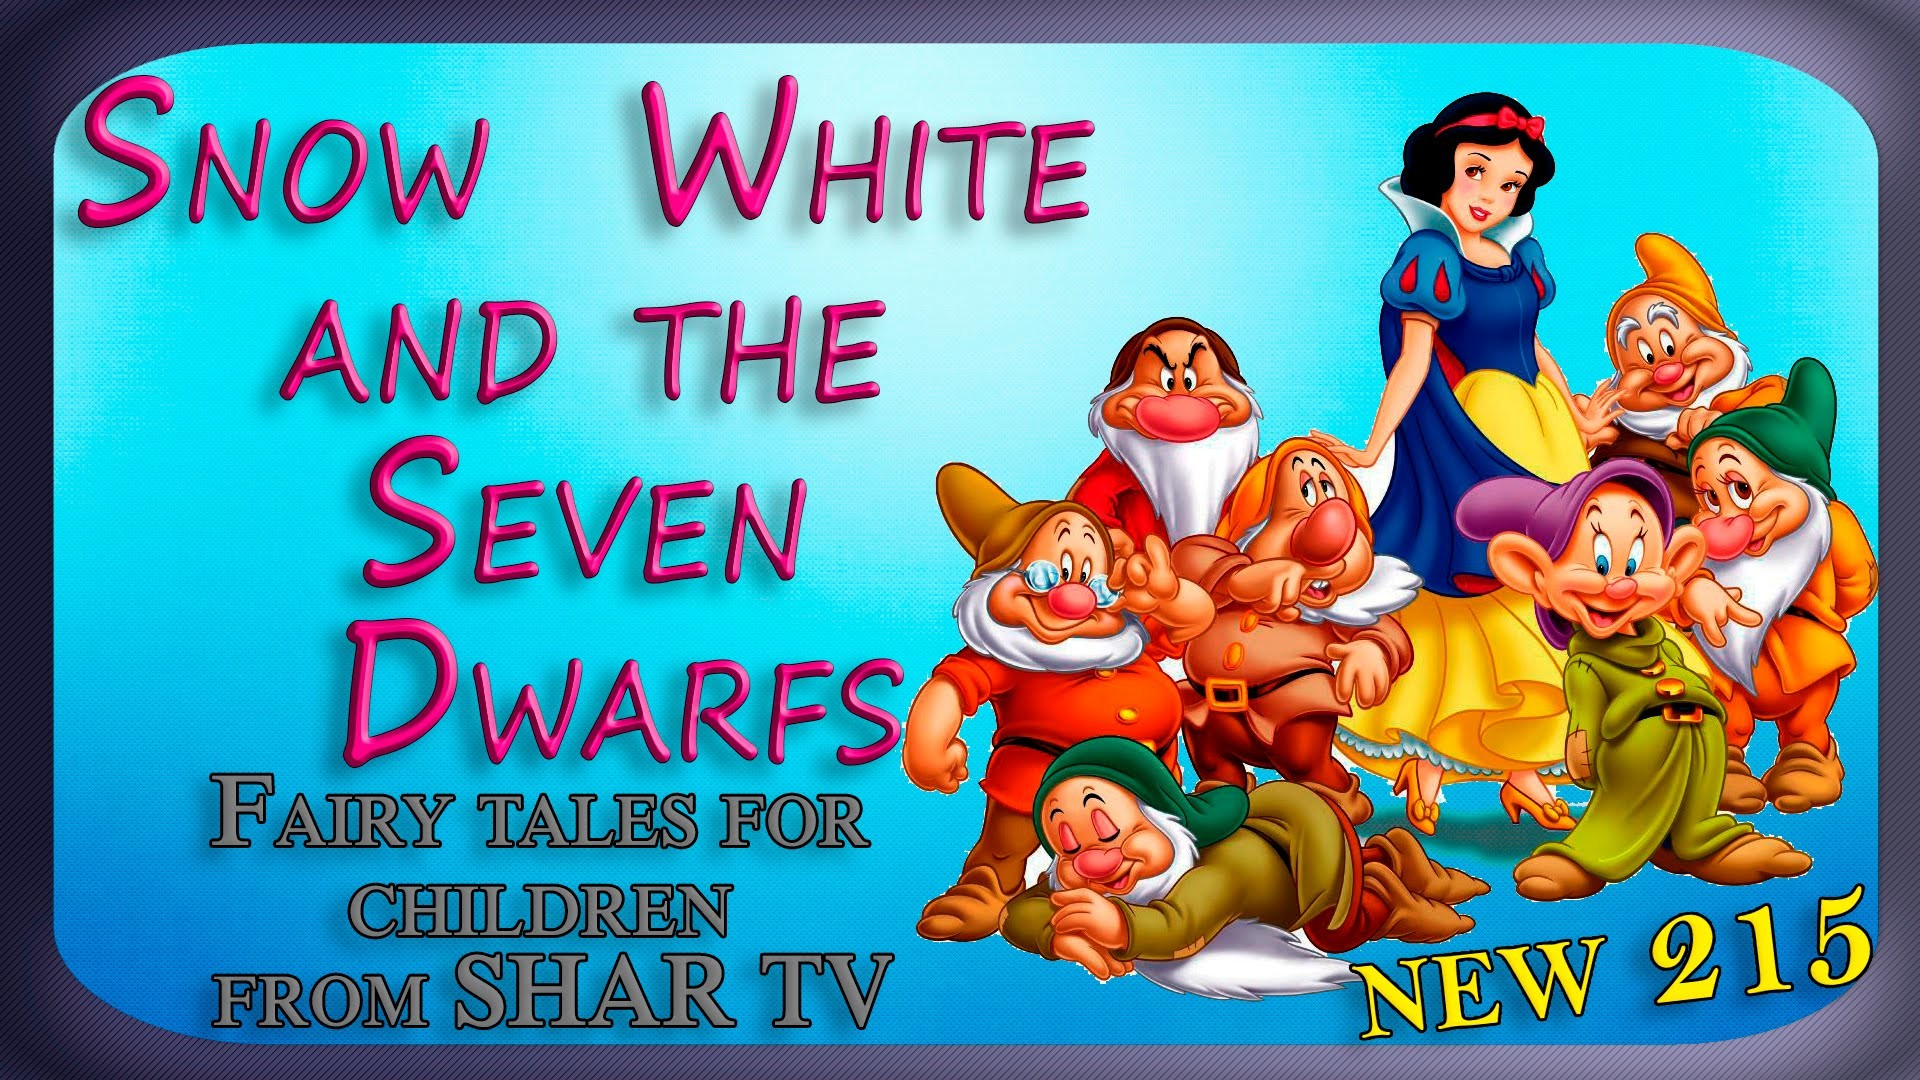 Snow White And The Seven Dwarfs Wallpaper 73 Images